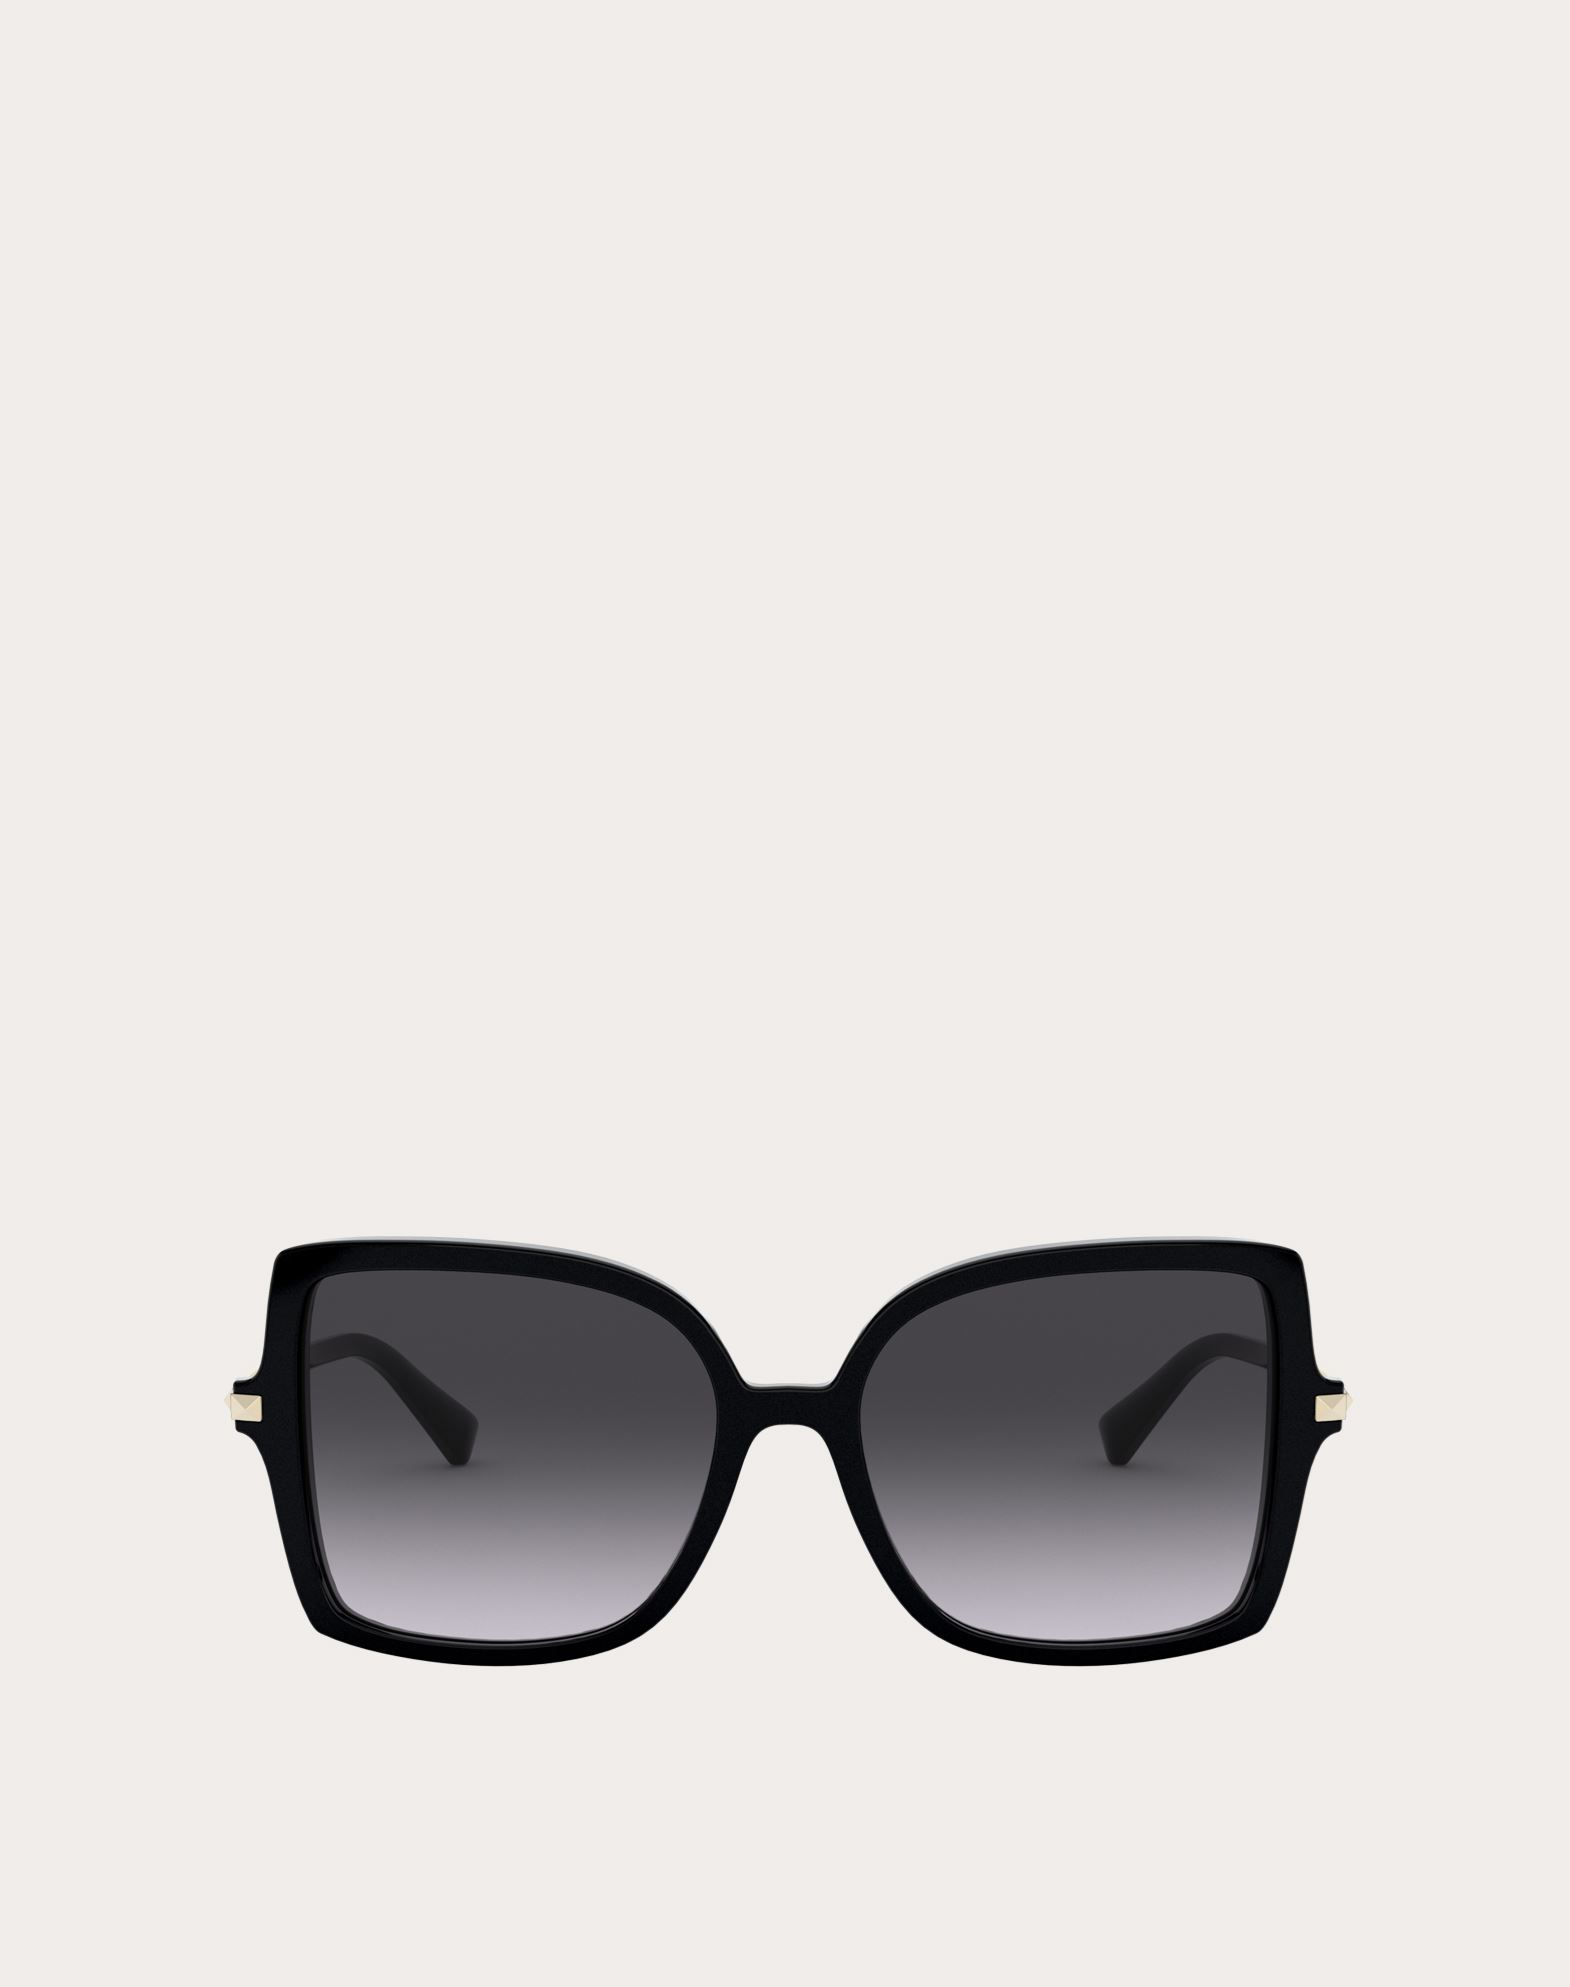 Valentino Occhiali Squared Acetate Frame With Studs In Black/gradient Black